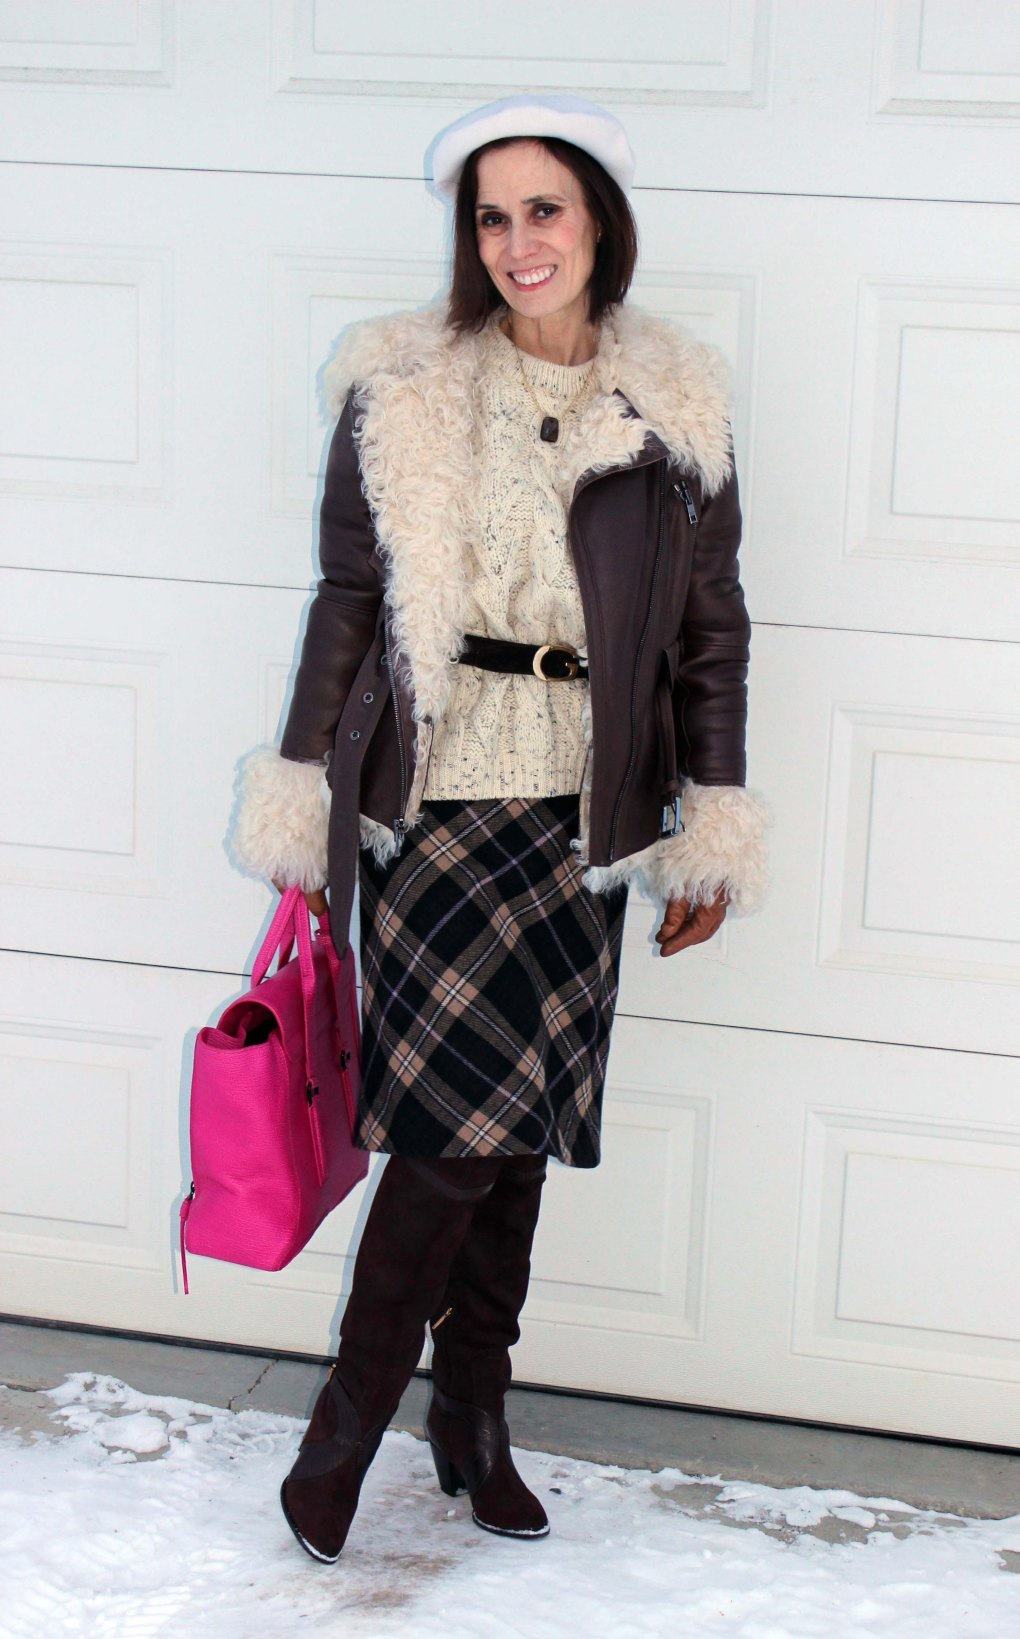 #maturefashion woman in over-the-knee boots and skirt weekend look